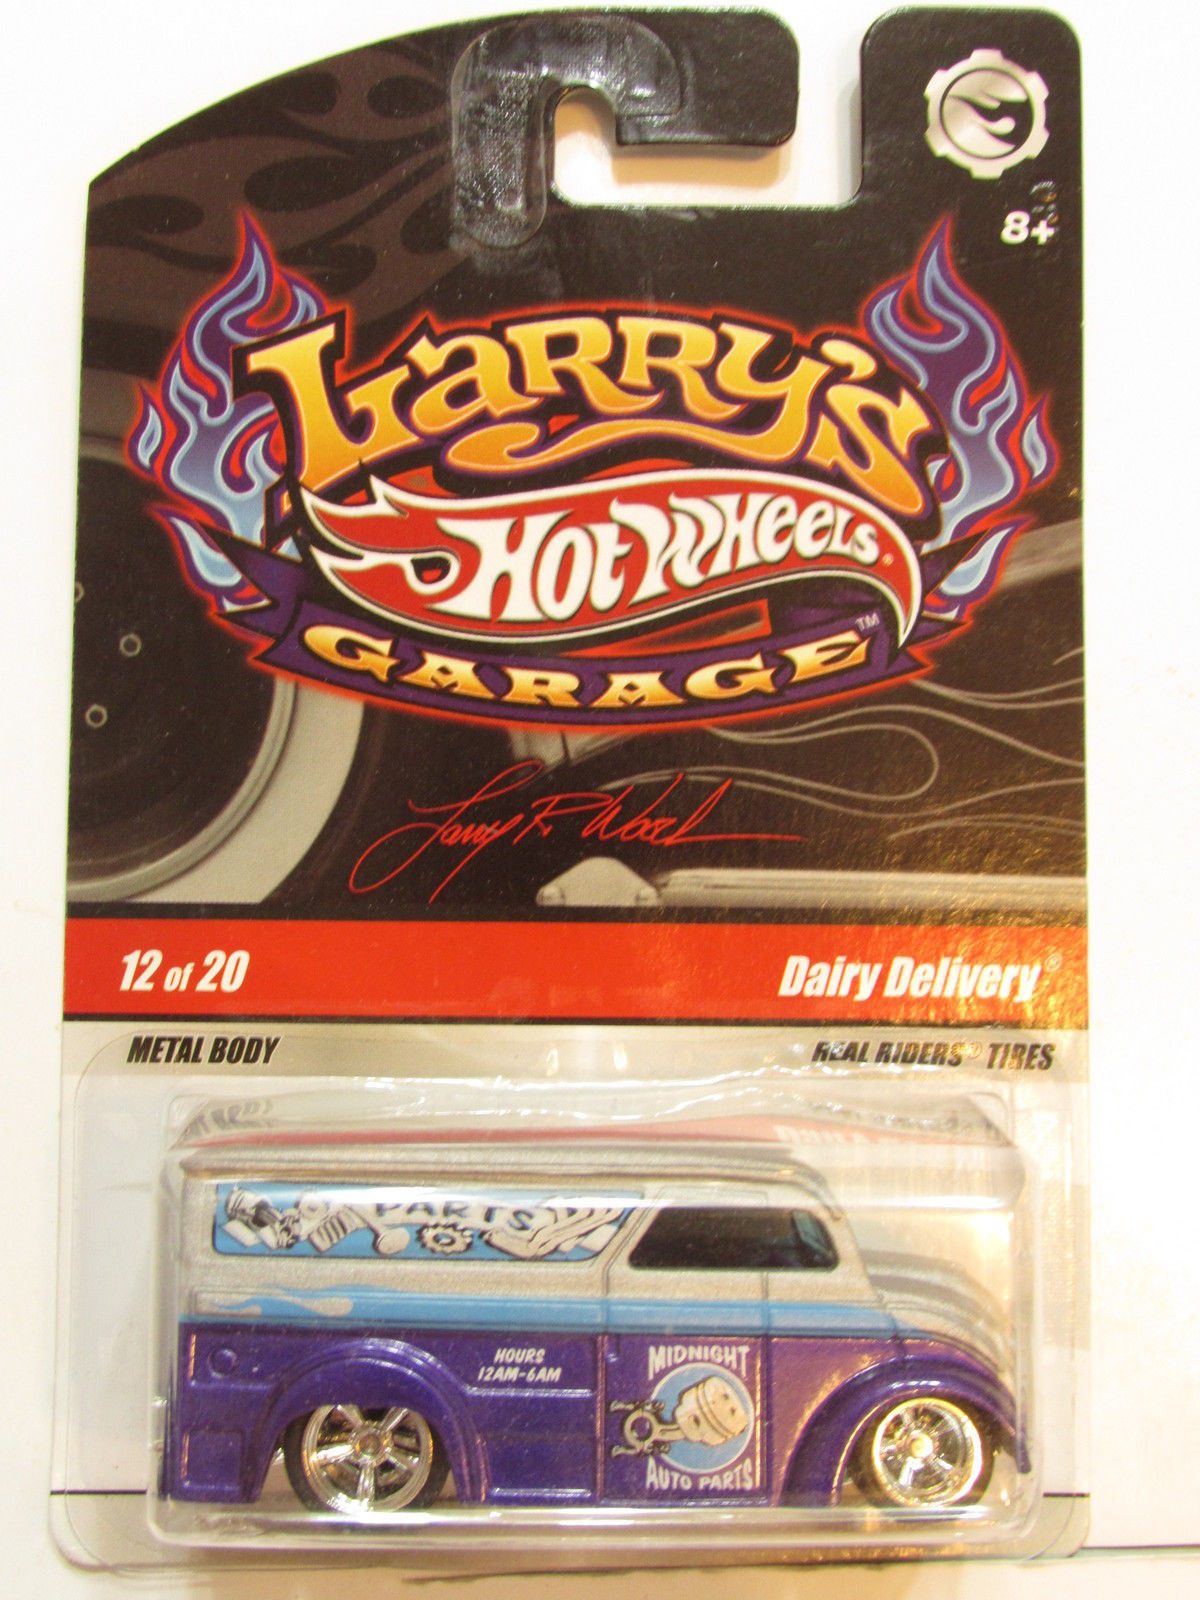 HOT WHEELS LARRY'S GARAGE #12/20 DAIRY DELIVERY PURPLE